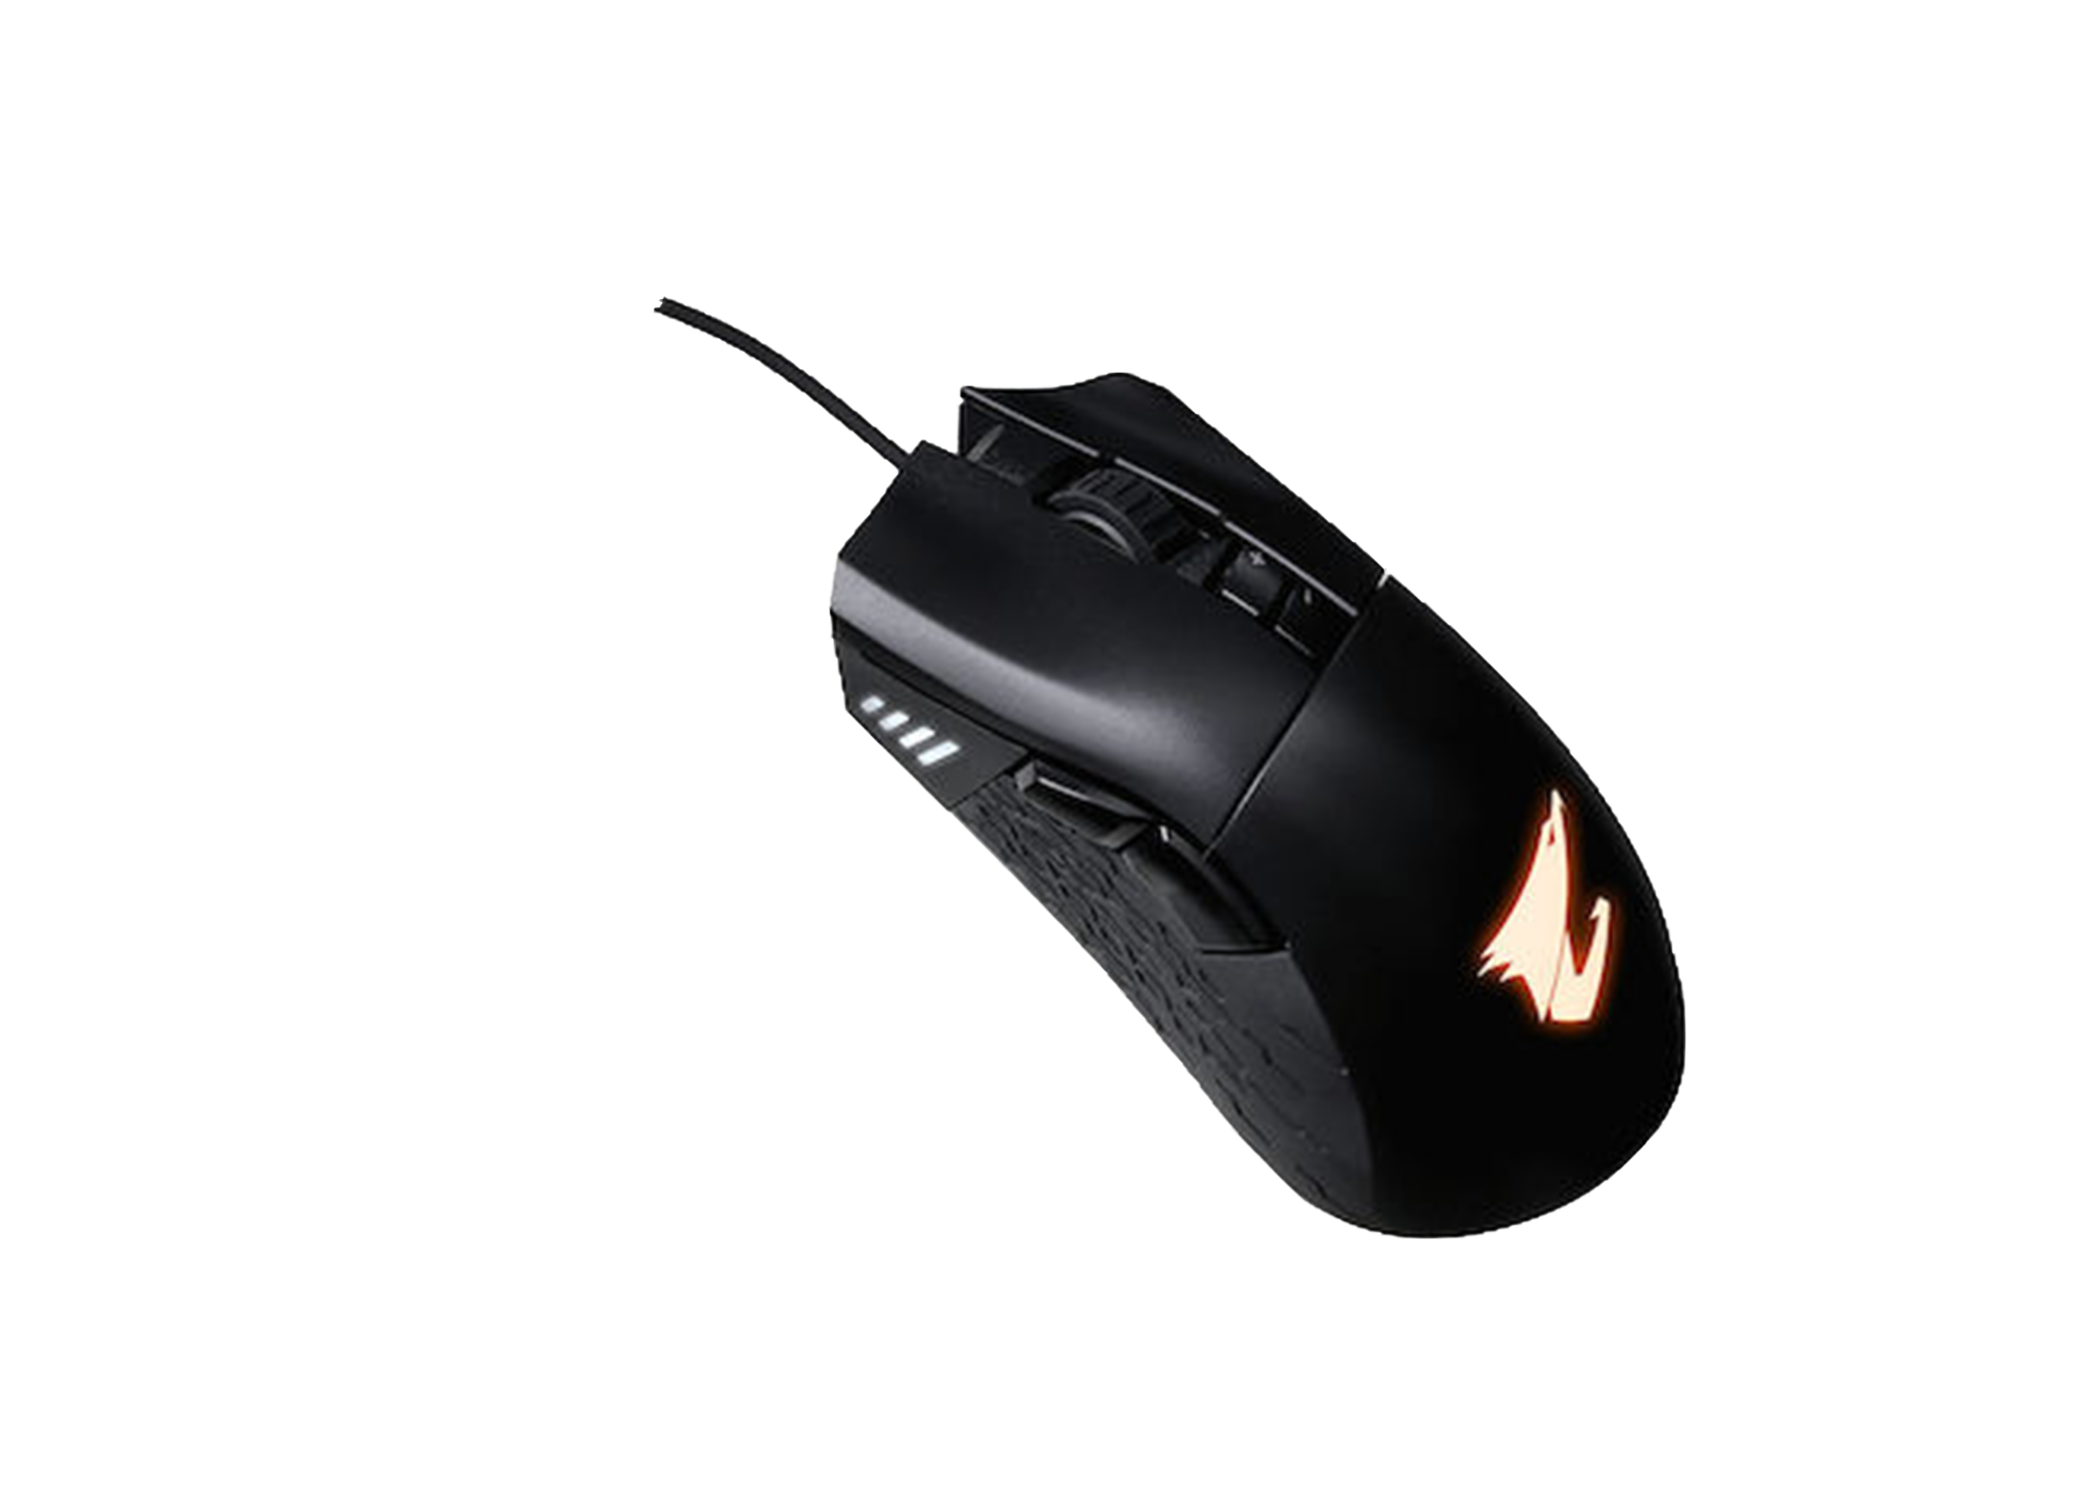 GIGABYTE MOUSE OPTICAL GAMING AORUS M3 USB BLACK 1